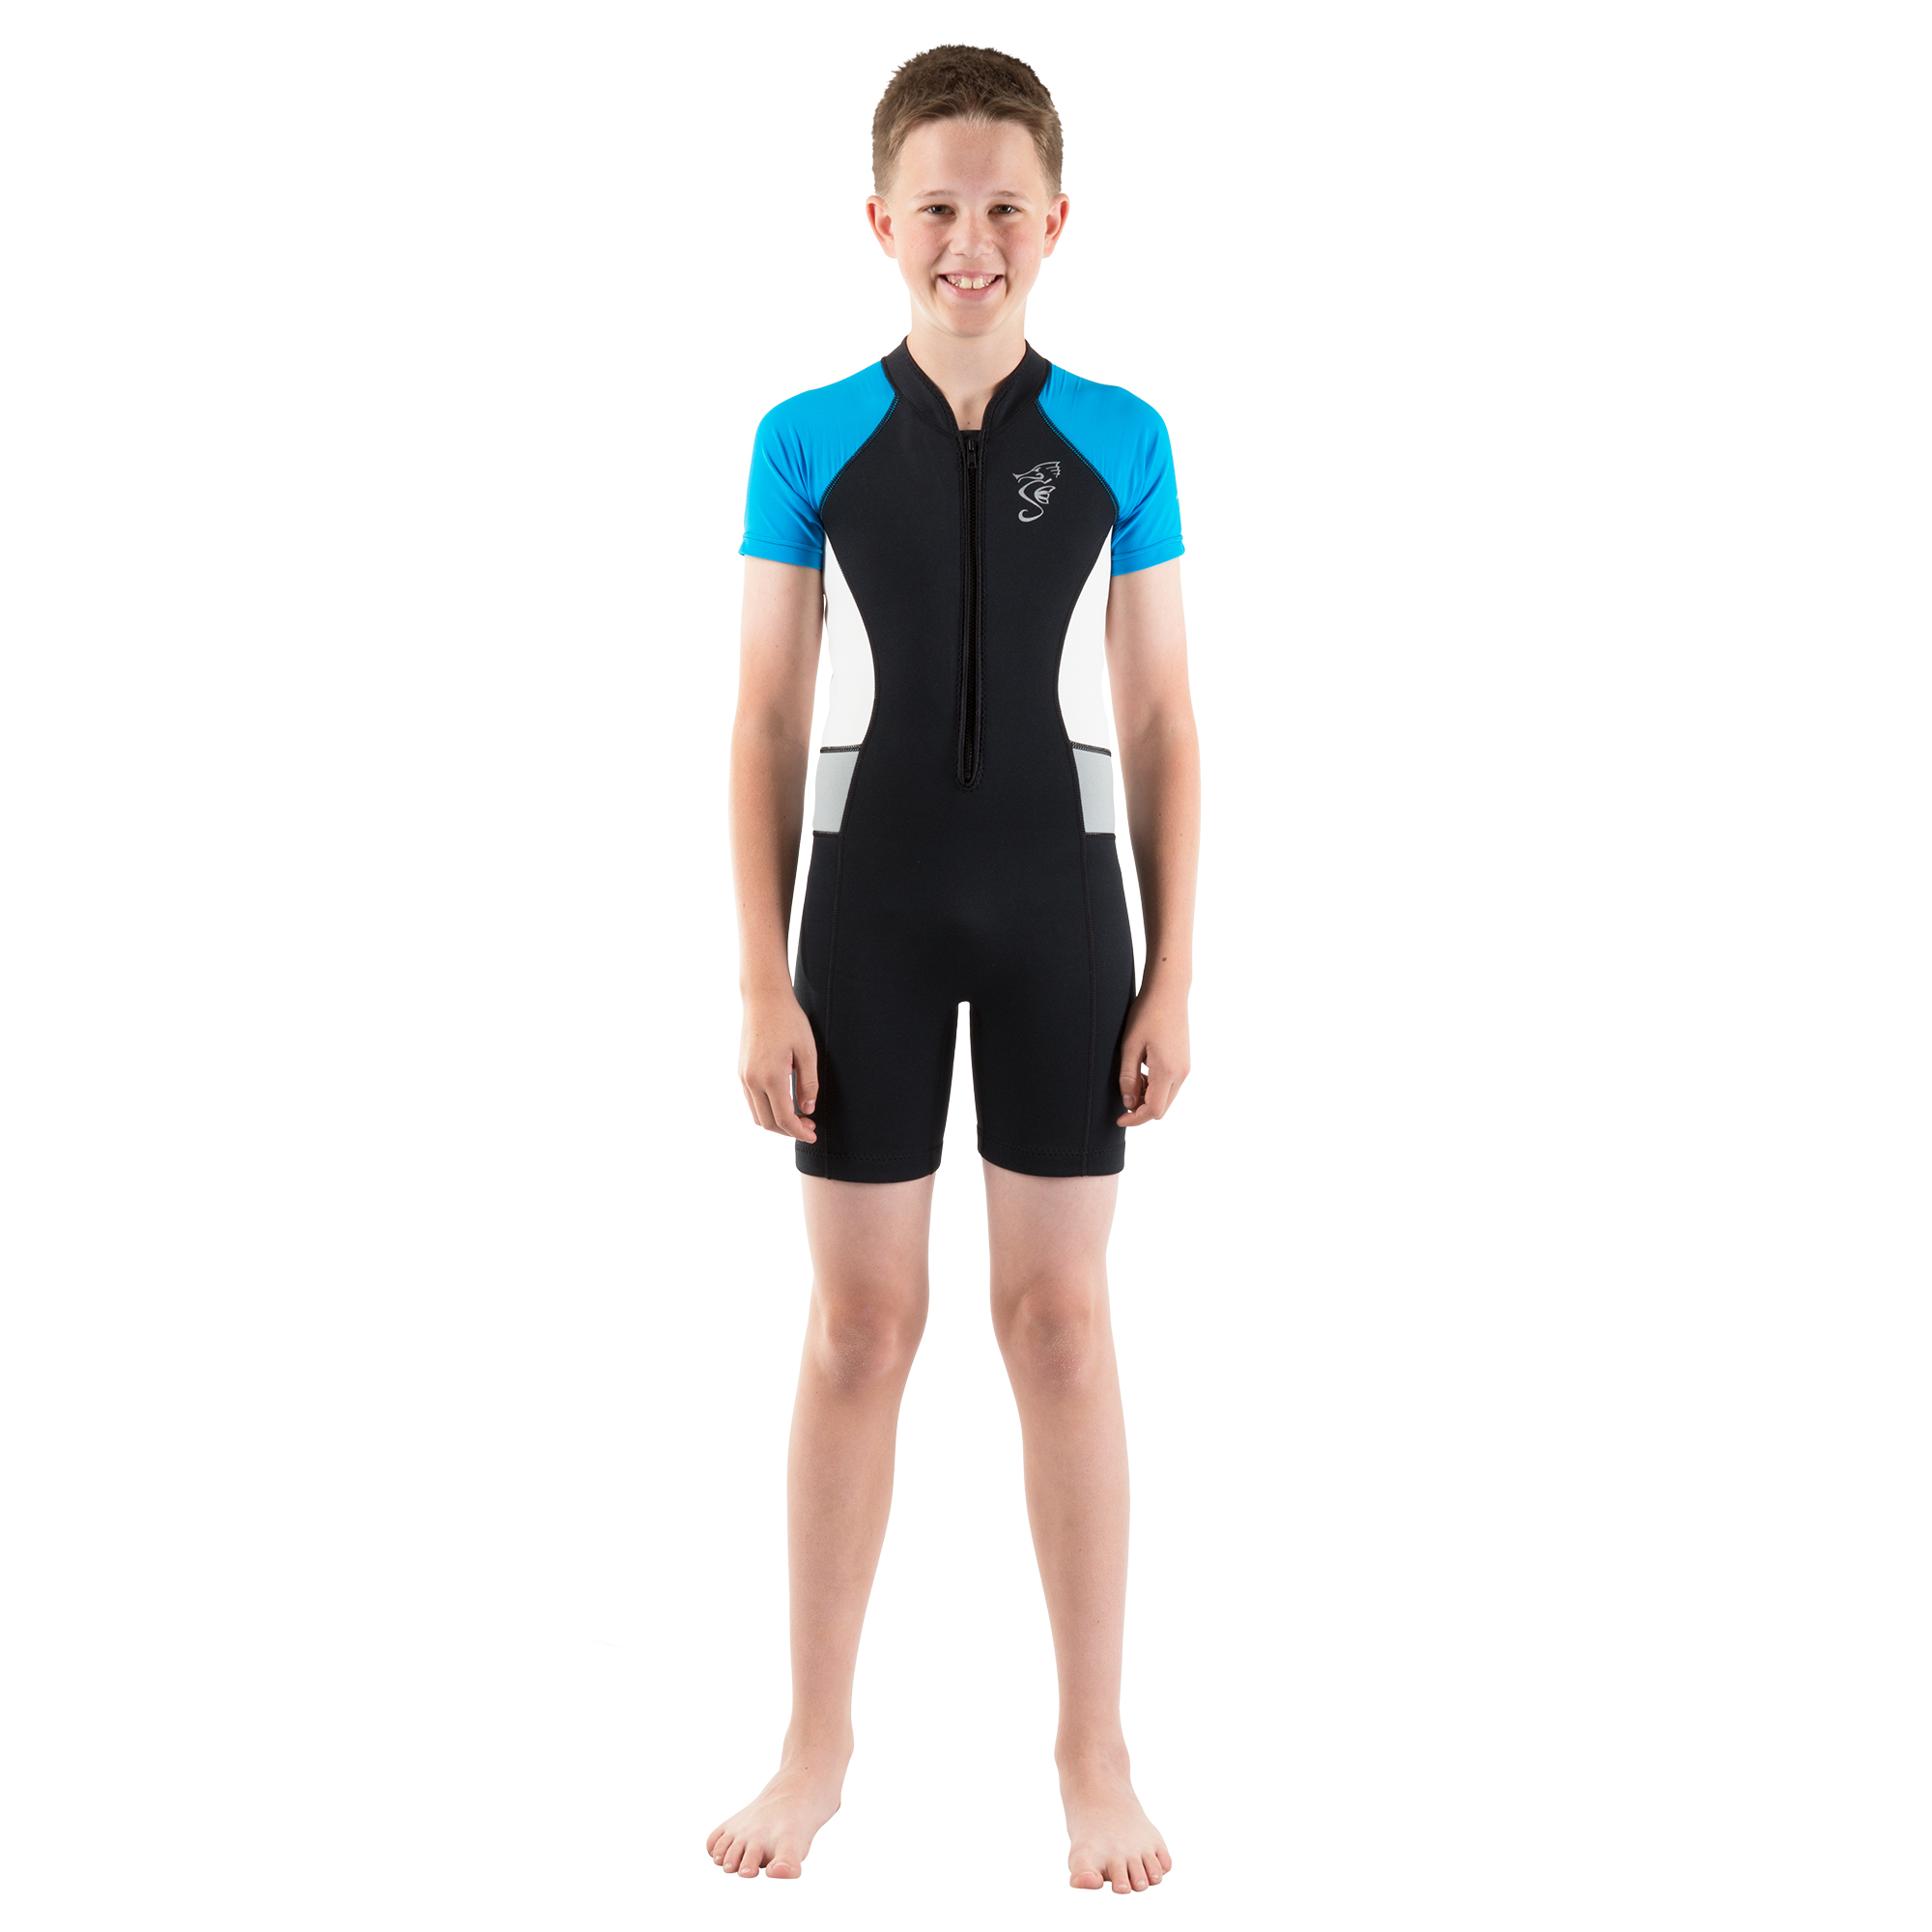 Seavenger Shorty Wetsuit for Kids with 2mm Neoprene and UV Protection, Great for Surfing, Snorkeling, Swimming (Blue, 7... by Seavenger